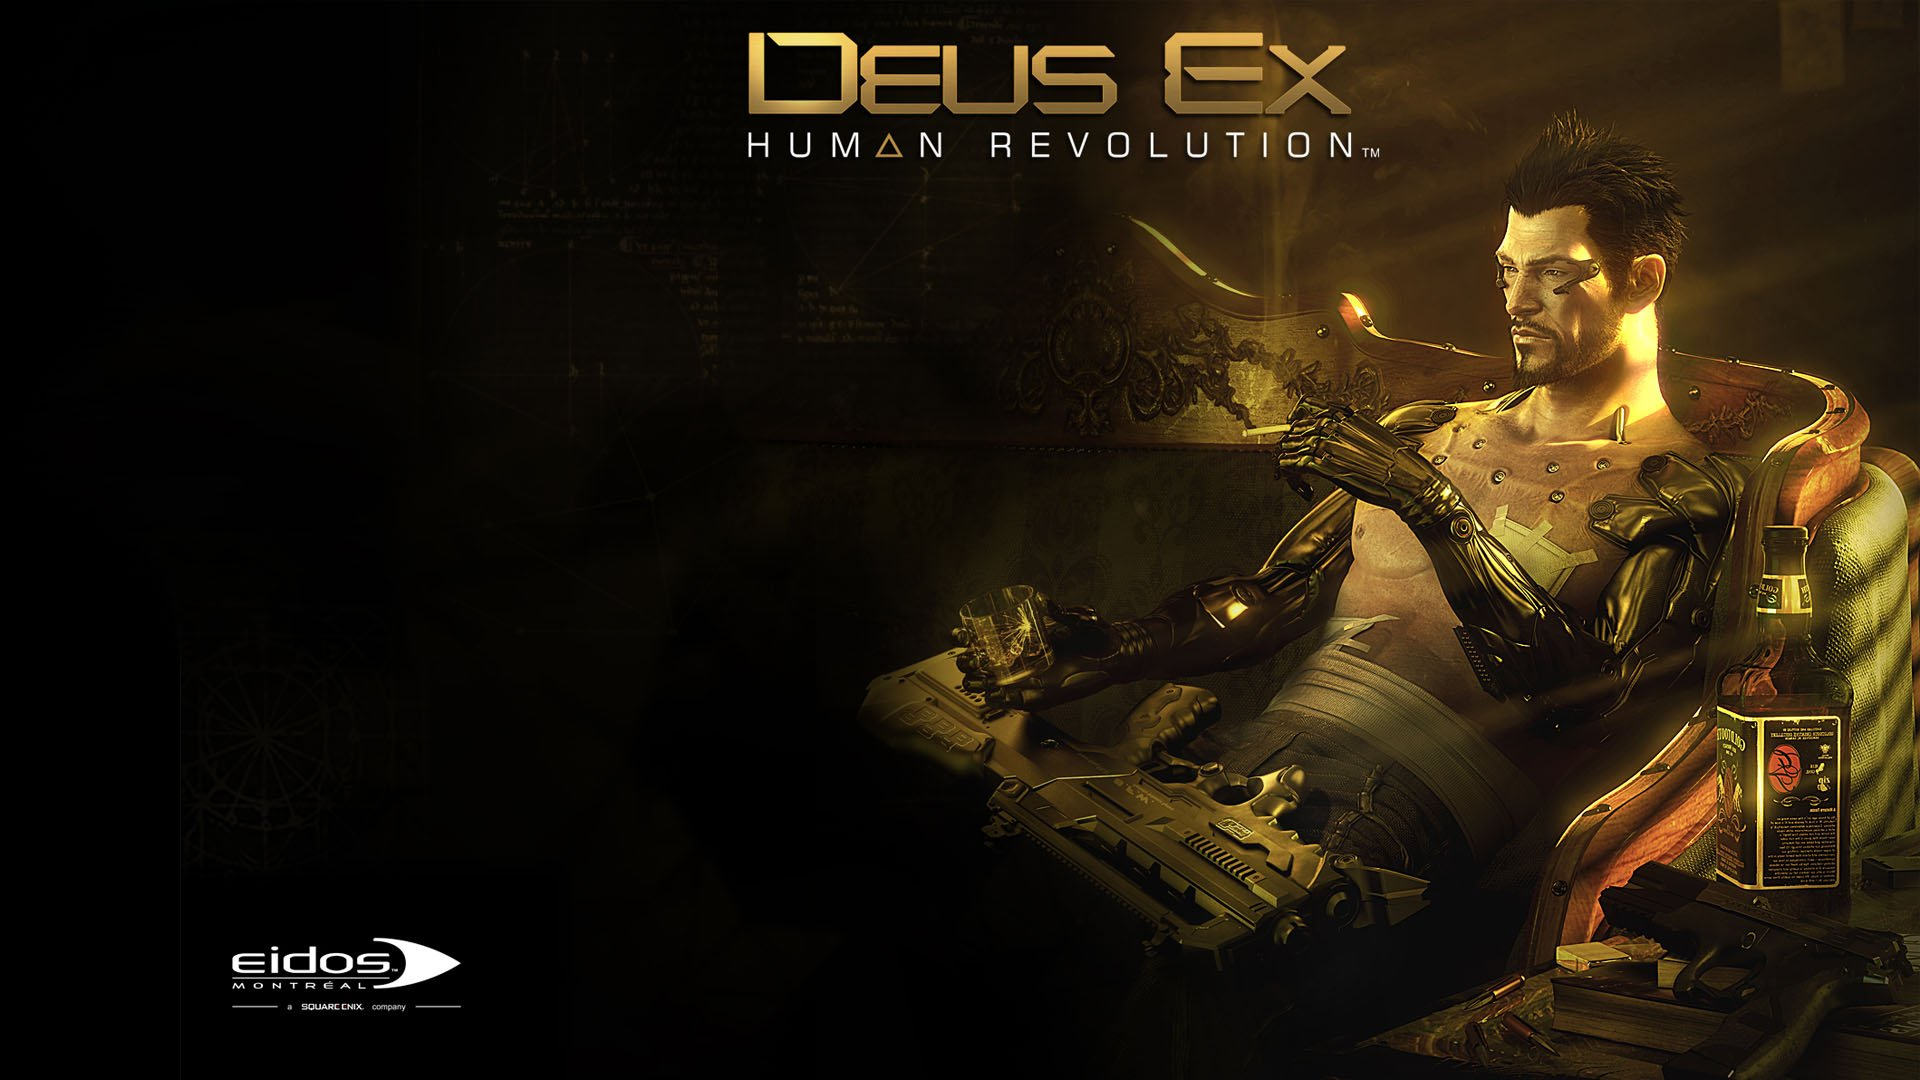 Deus Ex Human Revolution Wallpapers in HD Page 3 1920x1080